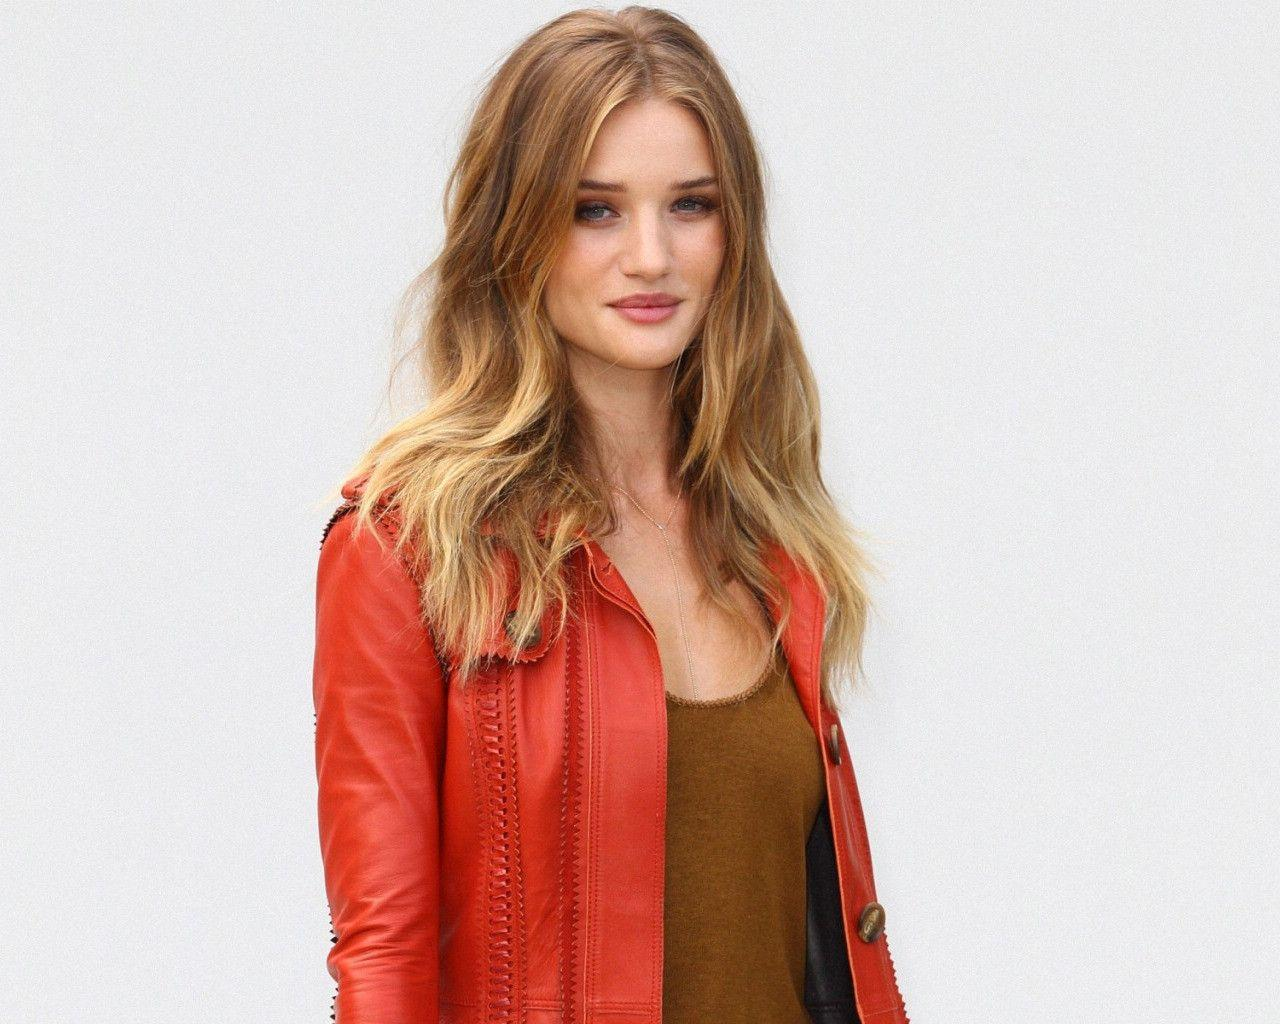 Rosie Huntington Whiteley Wallpapers Gallery